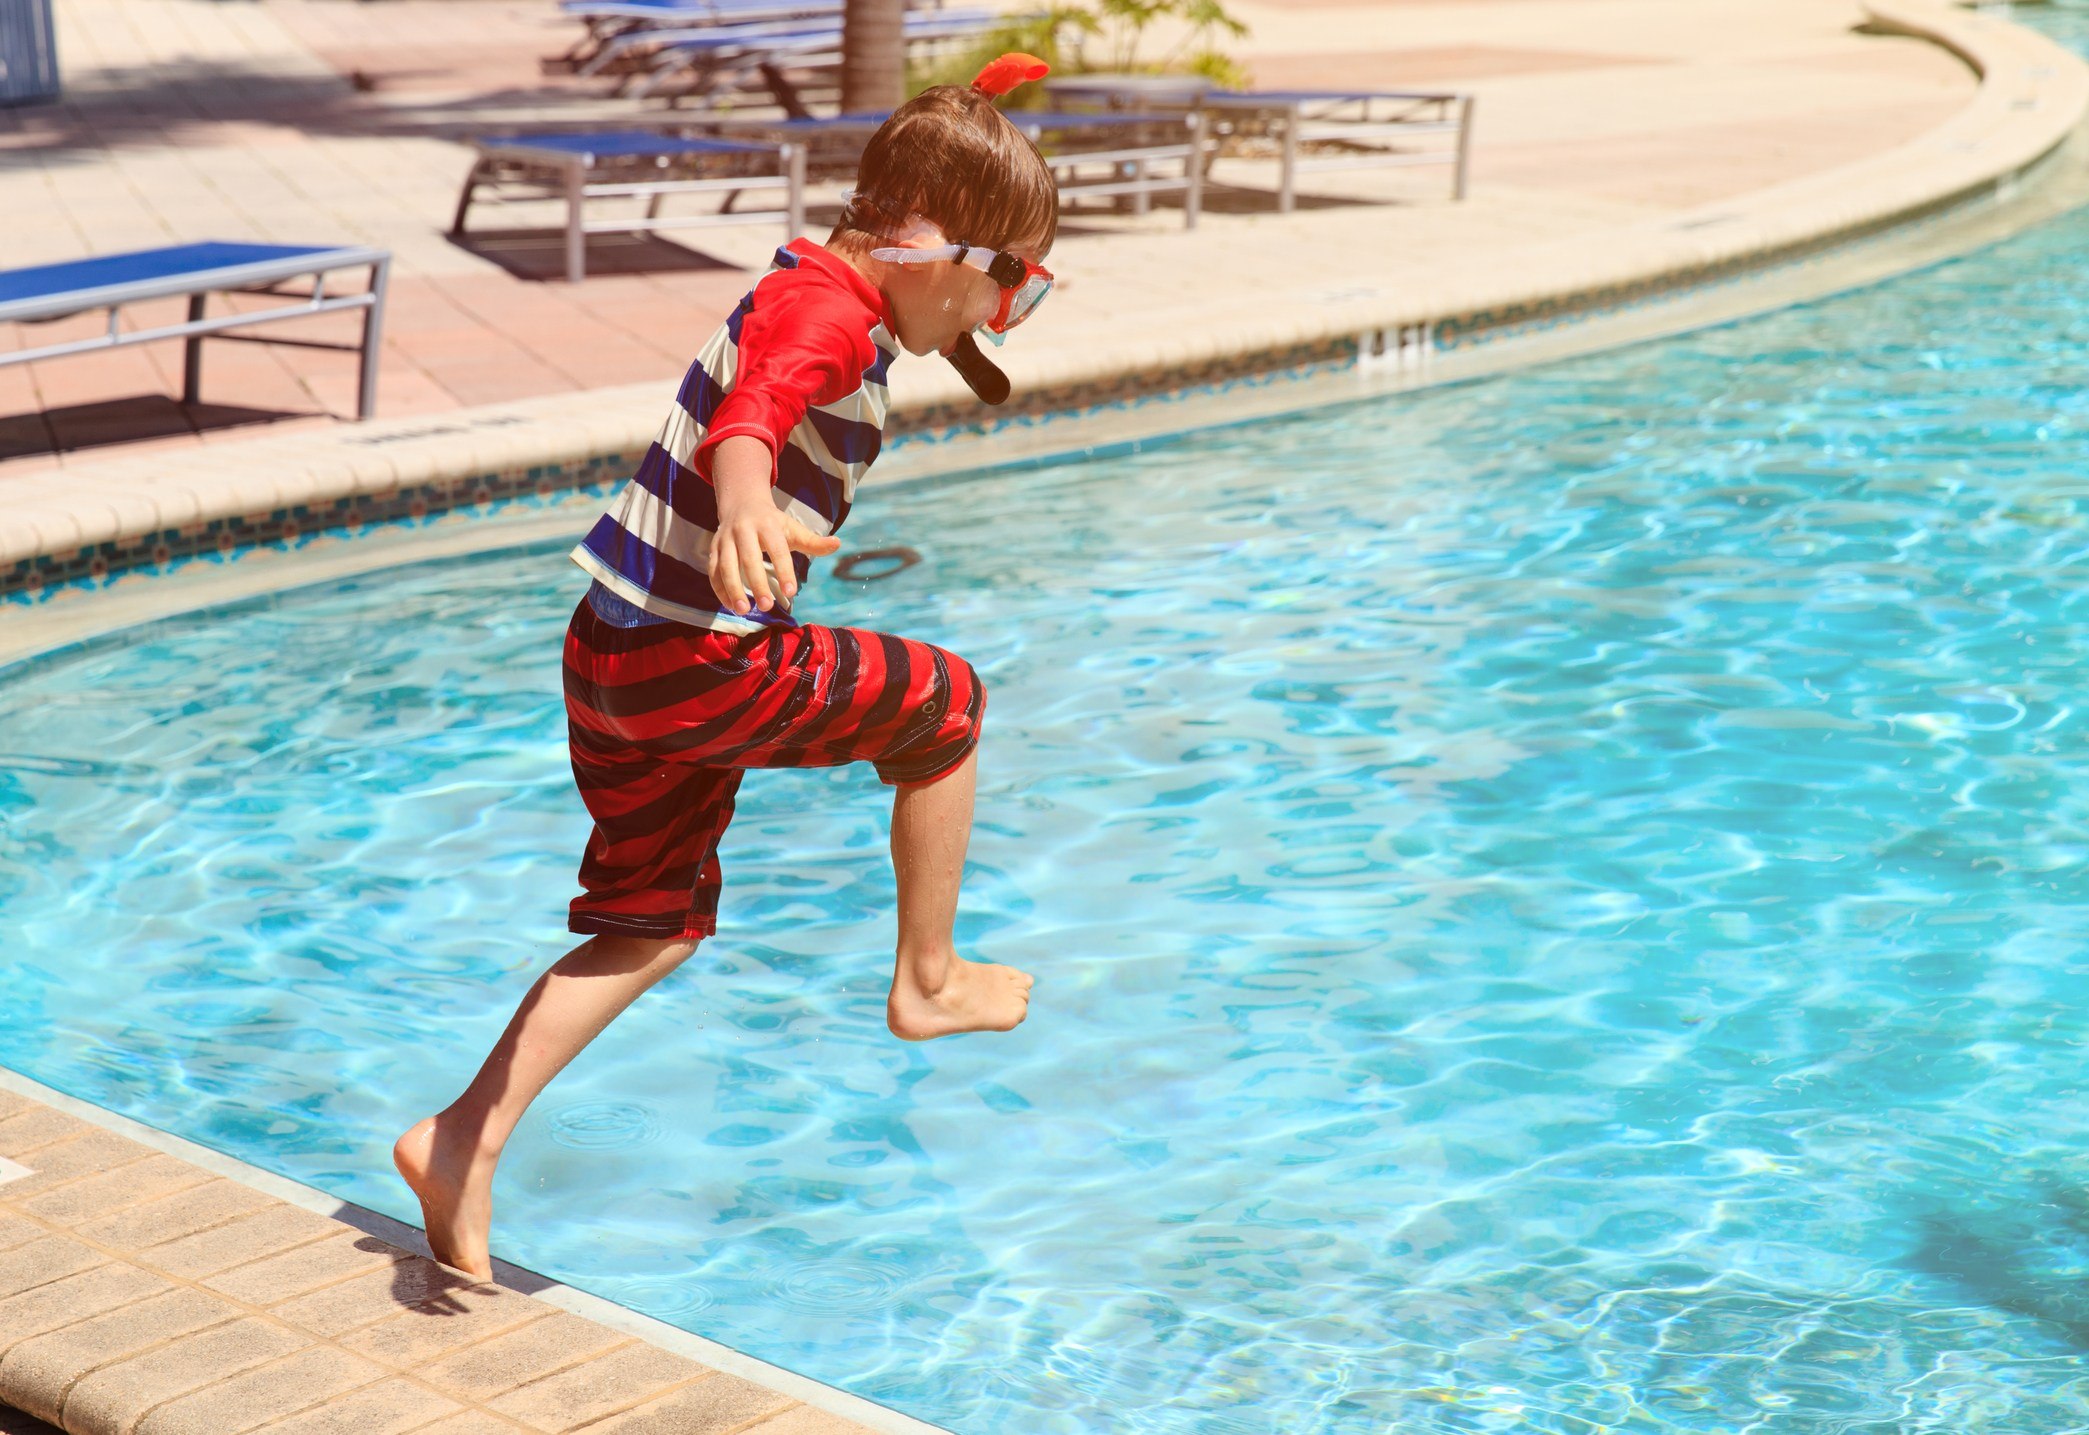 Boy jumping into the pool